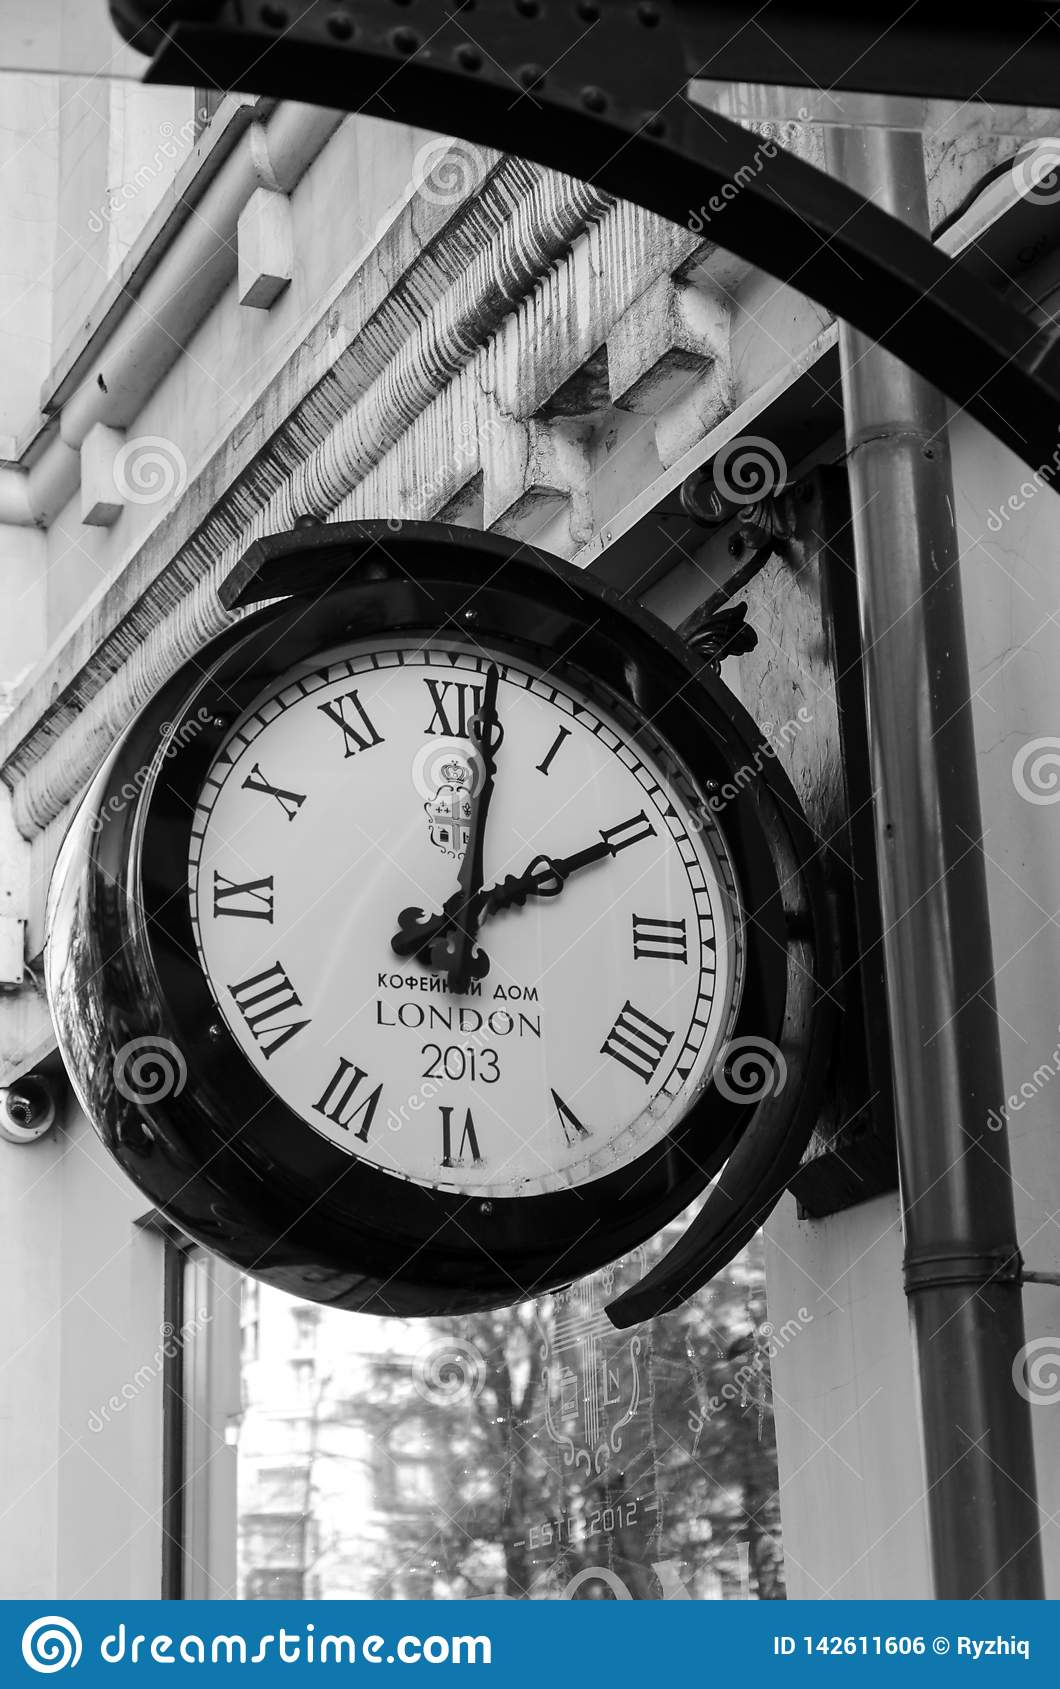 Clock at the London Hotel in Kyiv